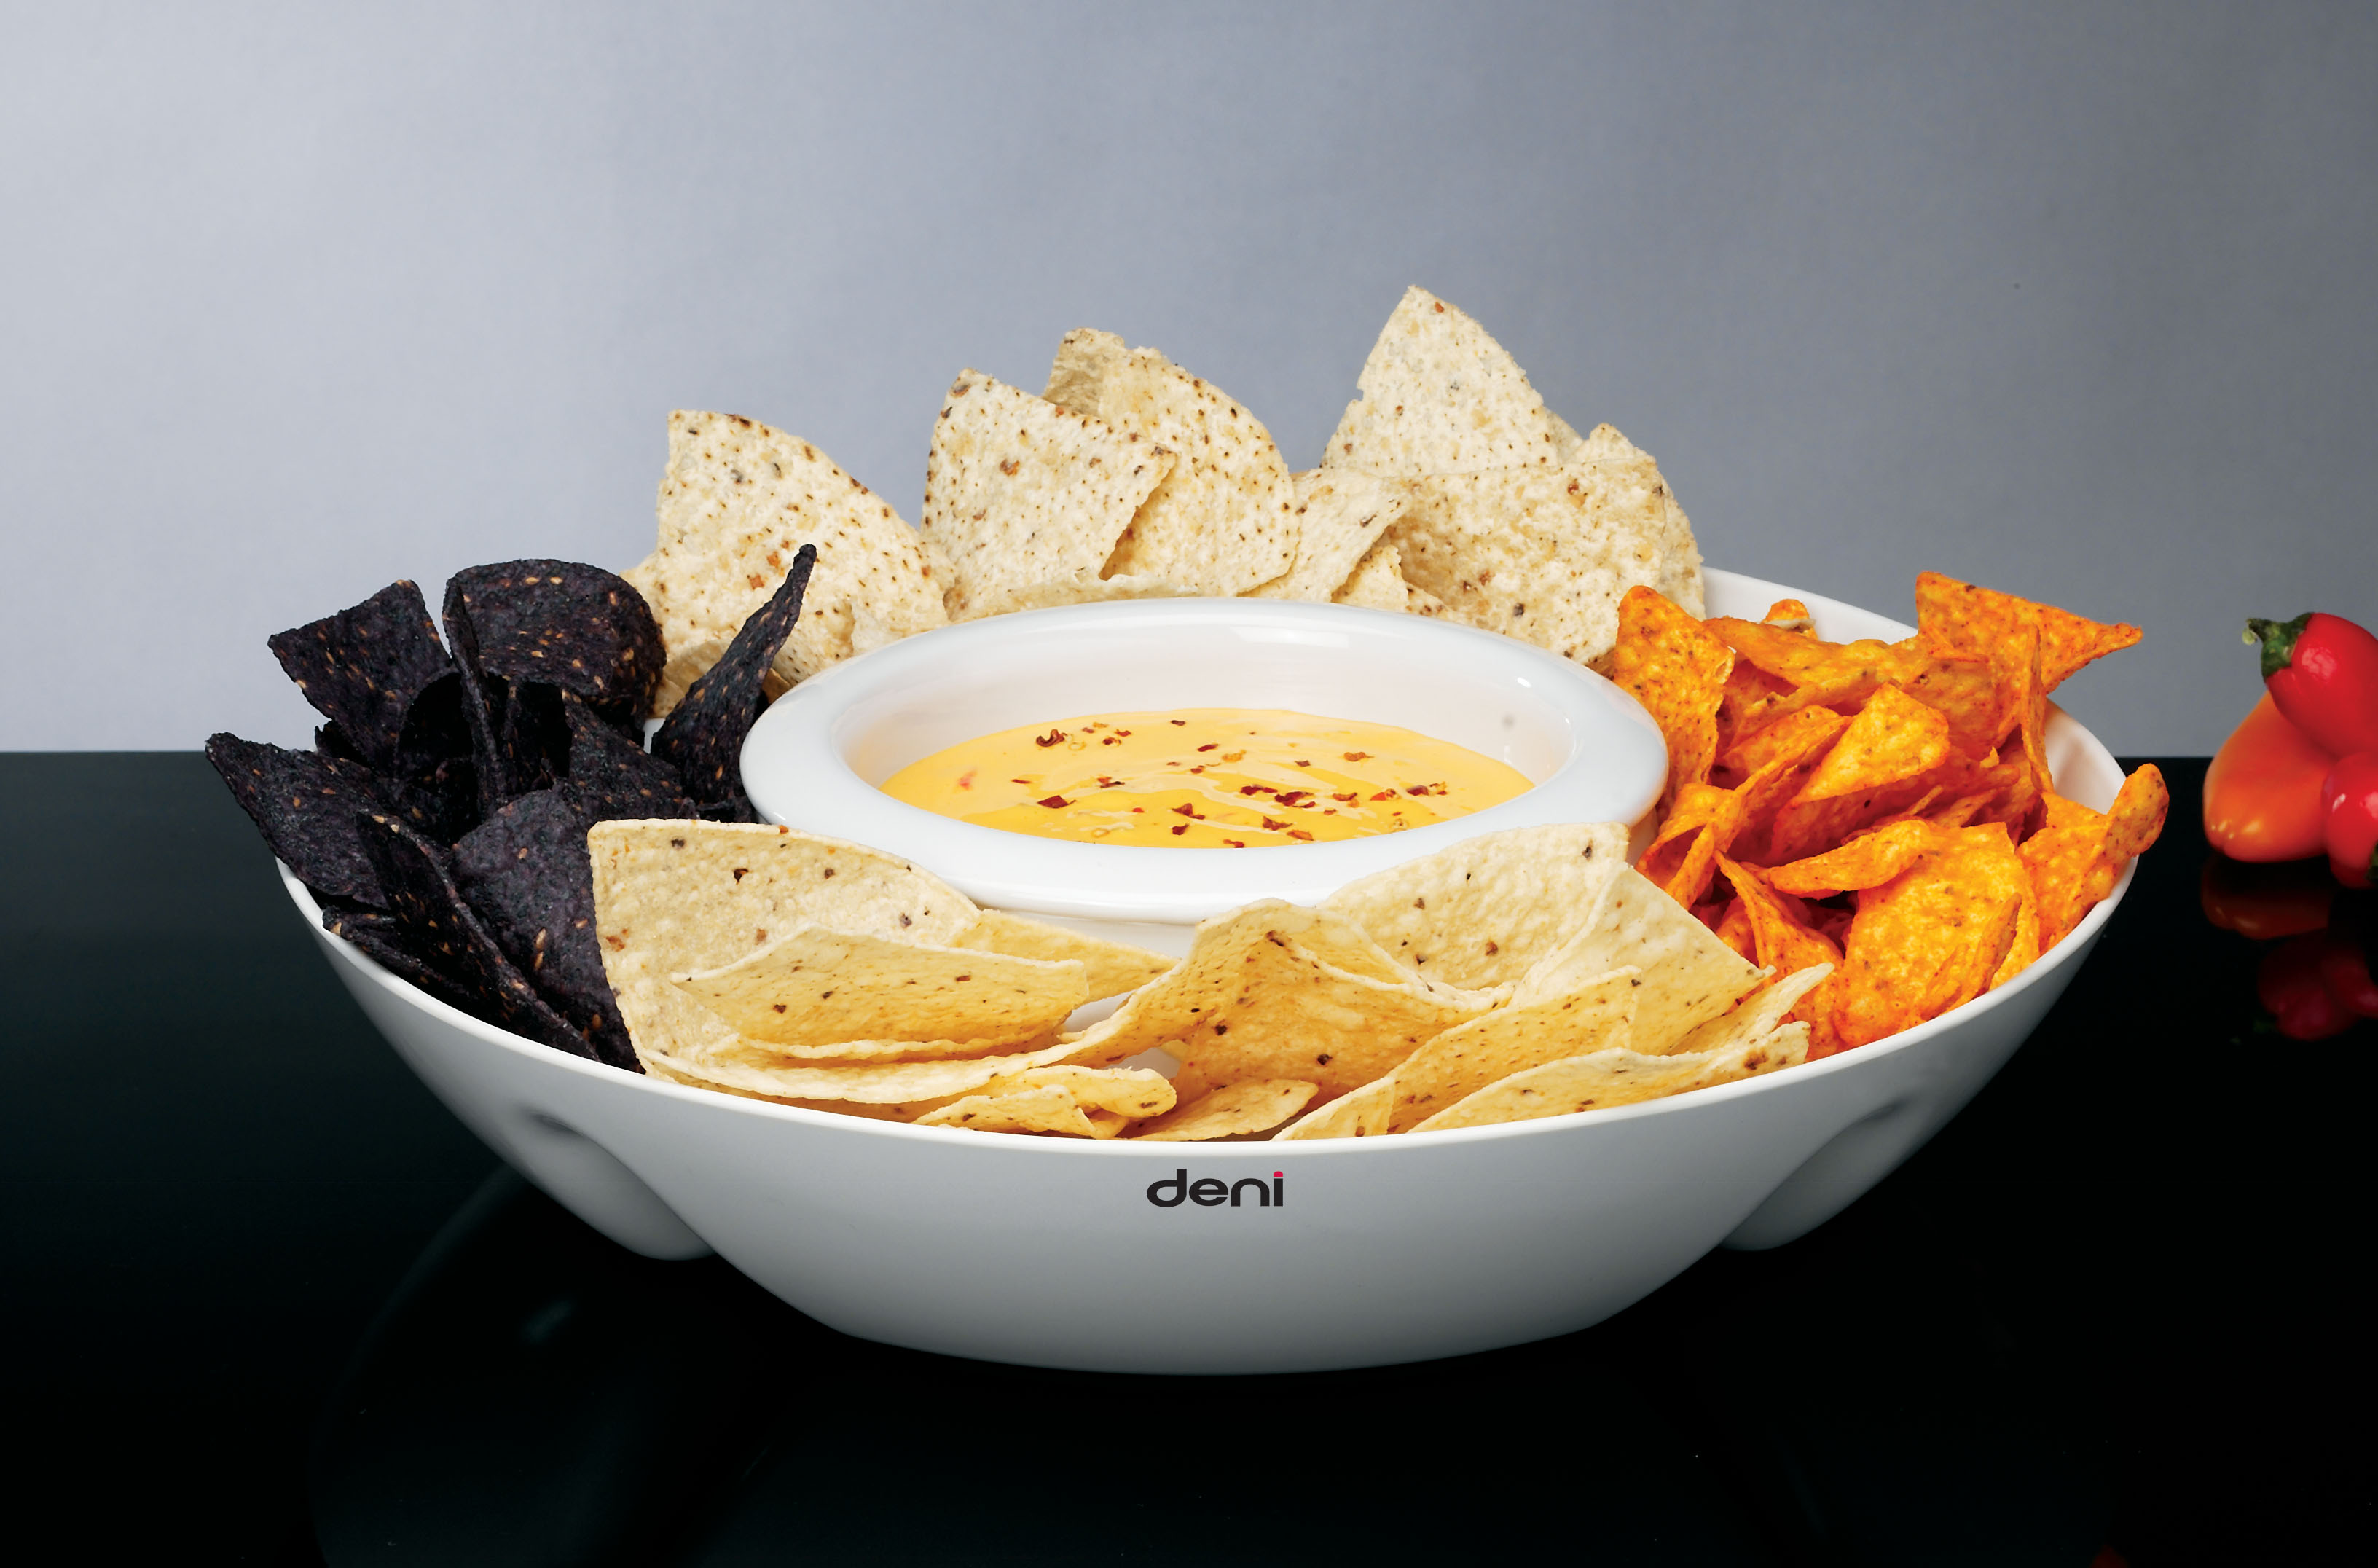 Deni 15700 chip n dip warmer server tray